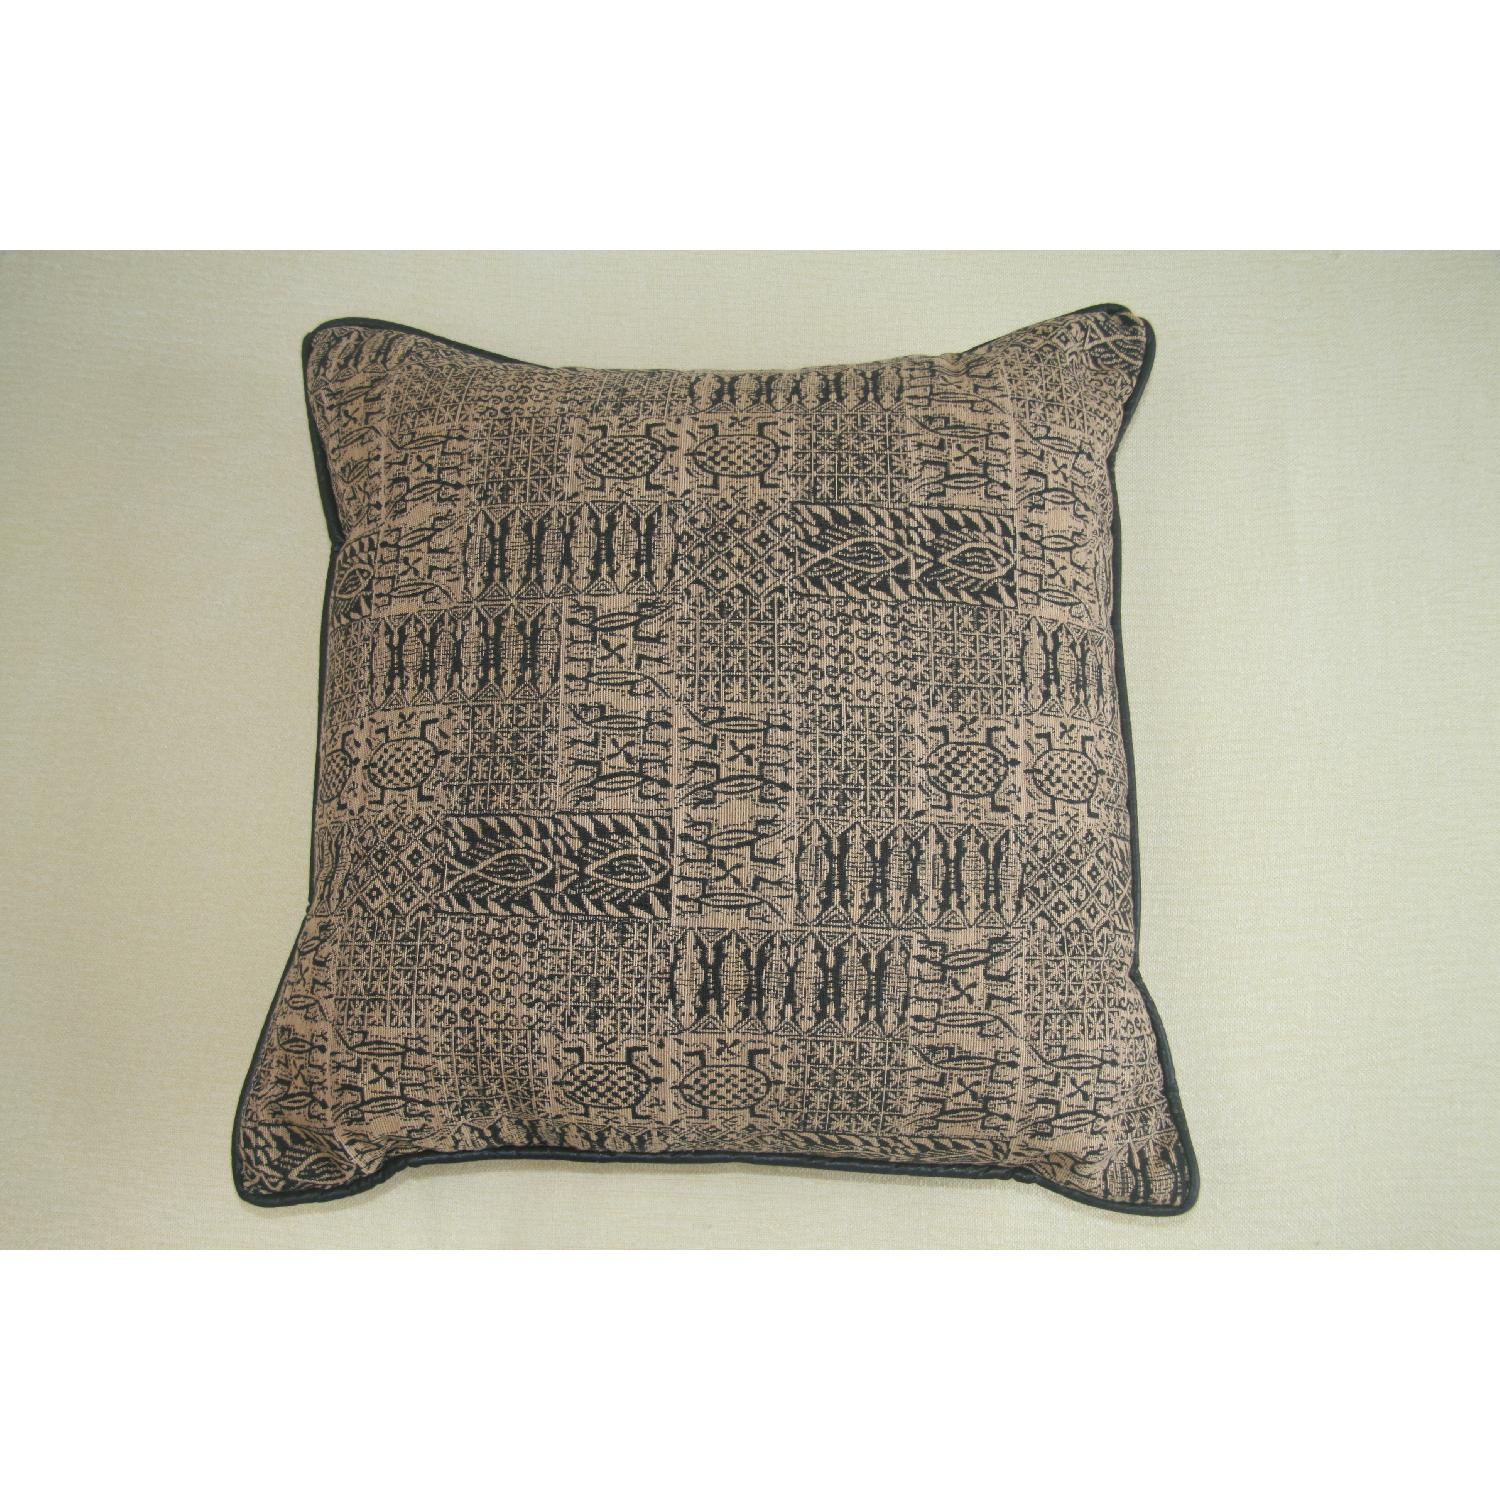 Large Pillows In Black & Gold Print - 2 Available - image-3